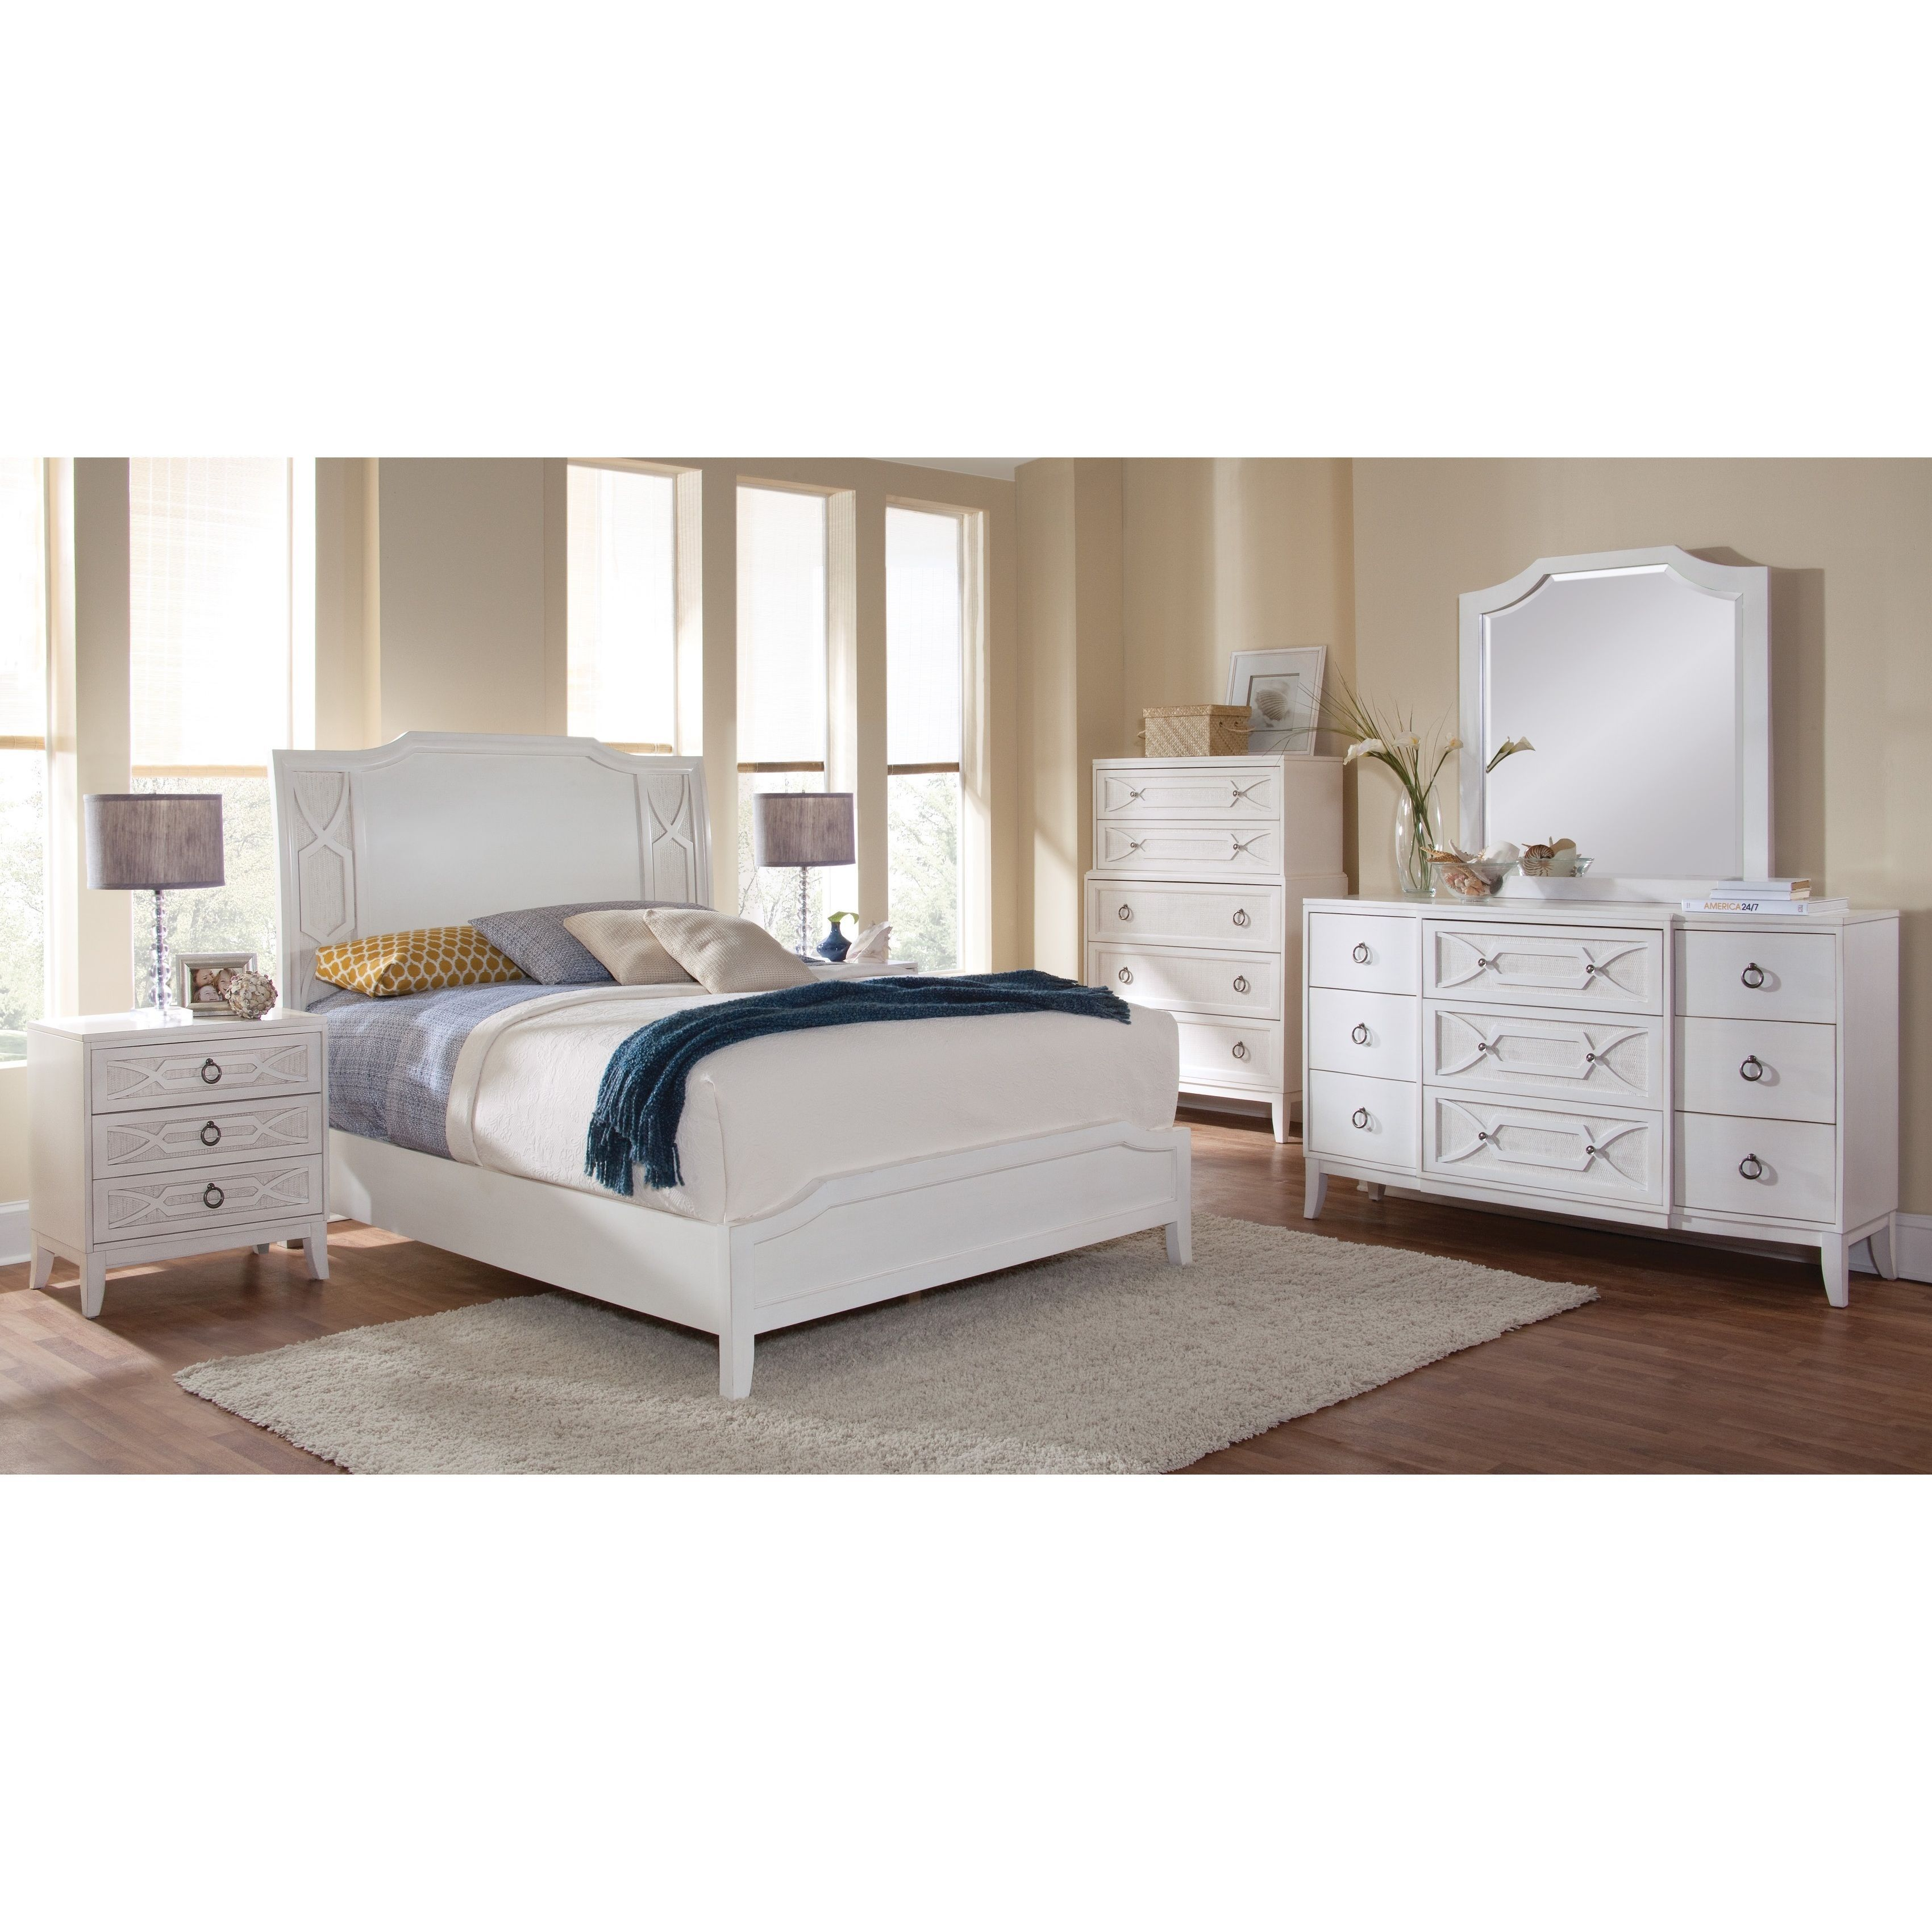 Enjoy the cottage charm of the Gladstone bedroom set. The antique white finish is accented by woven rattan insets and wooden fretwork. Durable construction with dovetail drawers, full extension glides and felt lined top drawers throughout.